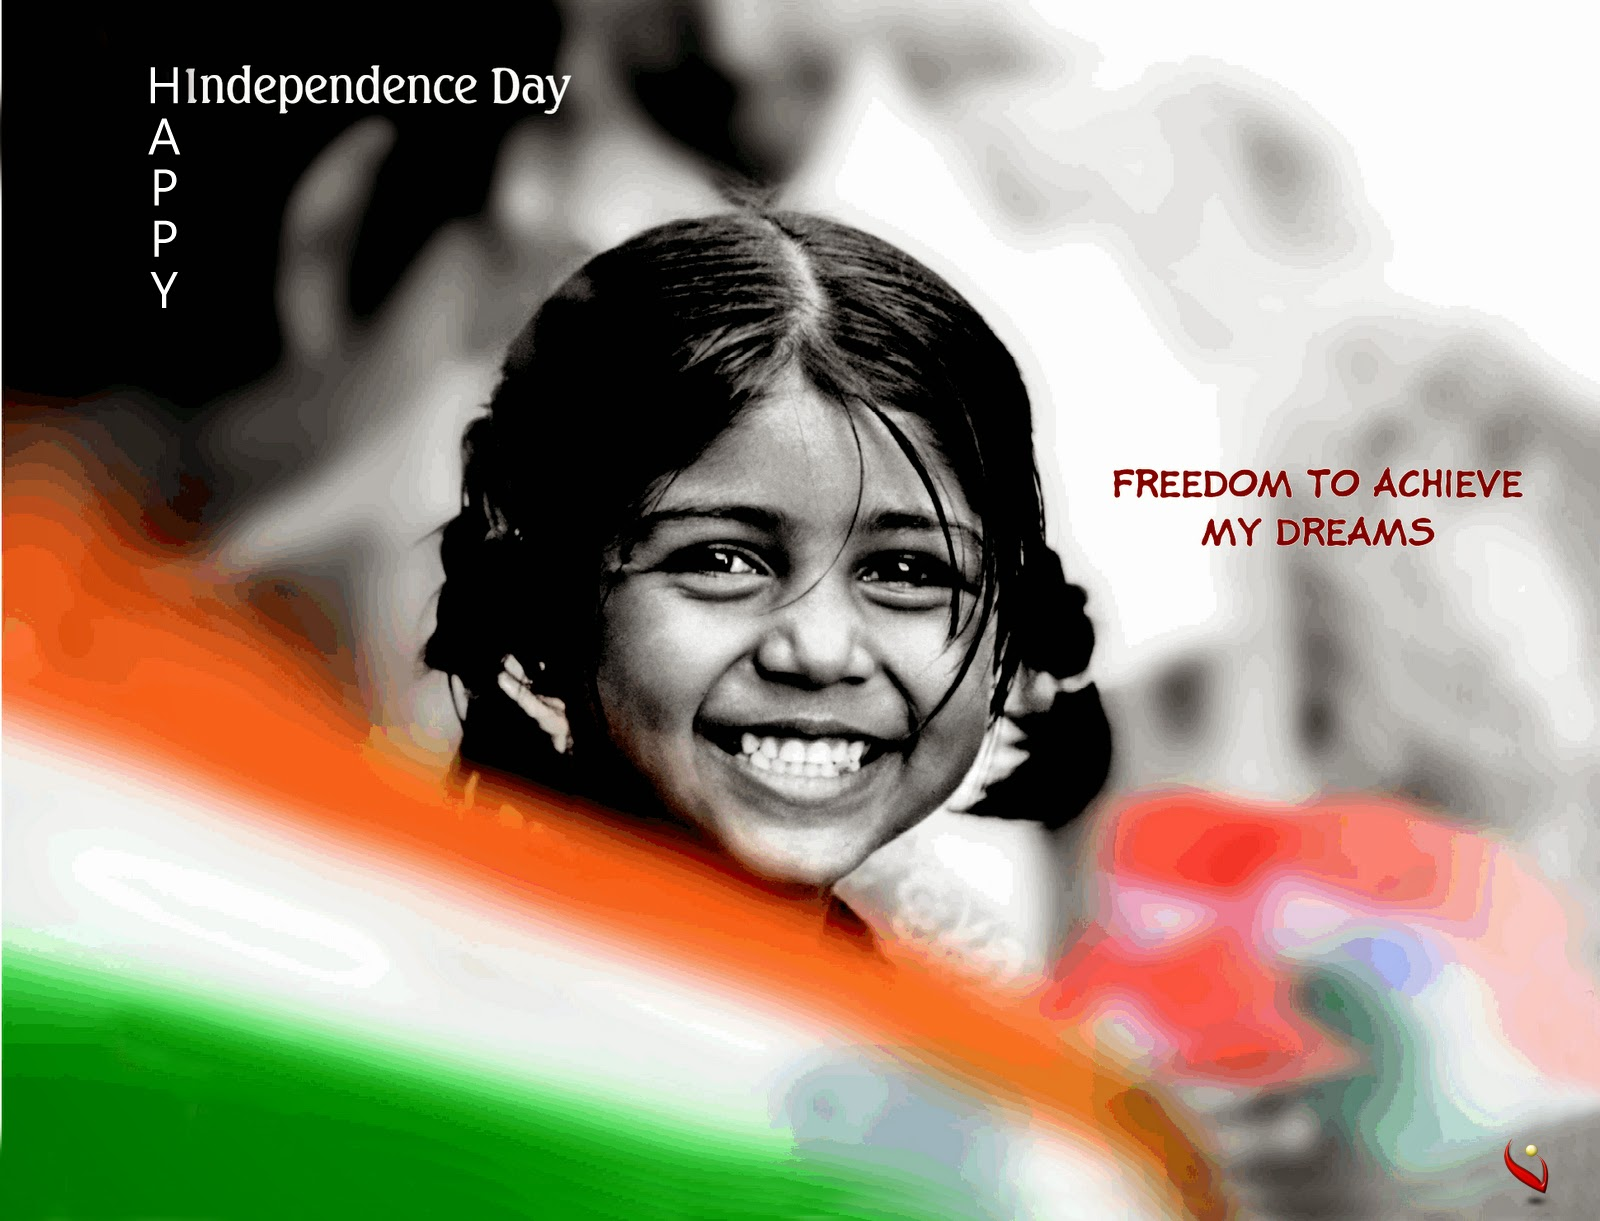 independence desktop themes, independence day wallpaper 2014, independence day mobile wallpapers, independence day wallpaper free ,download, independence day wallpaper 2014, 15 august independence day ,wallpaper free download, indian independence day wallpaper ,free download, 15 august